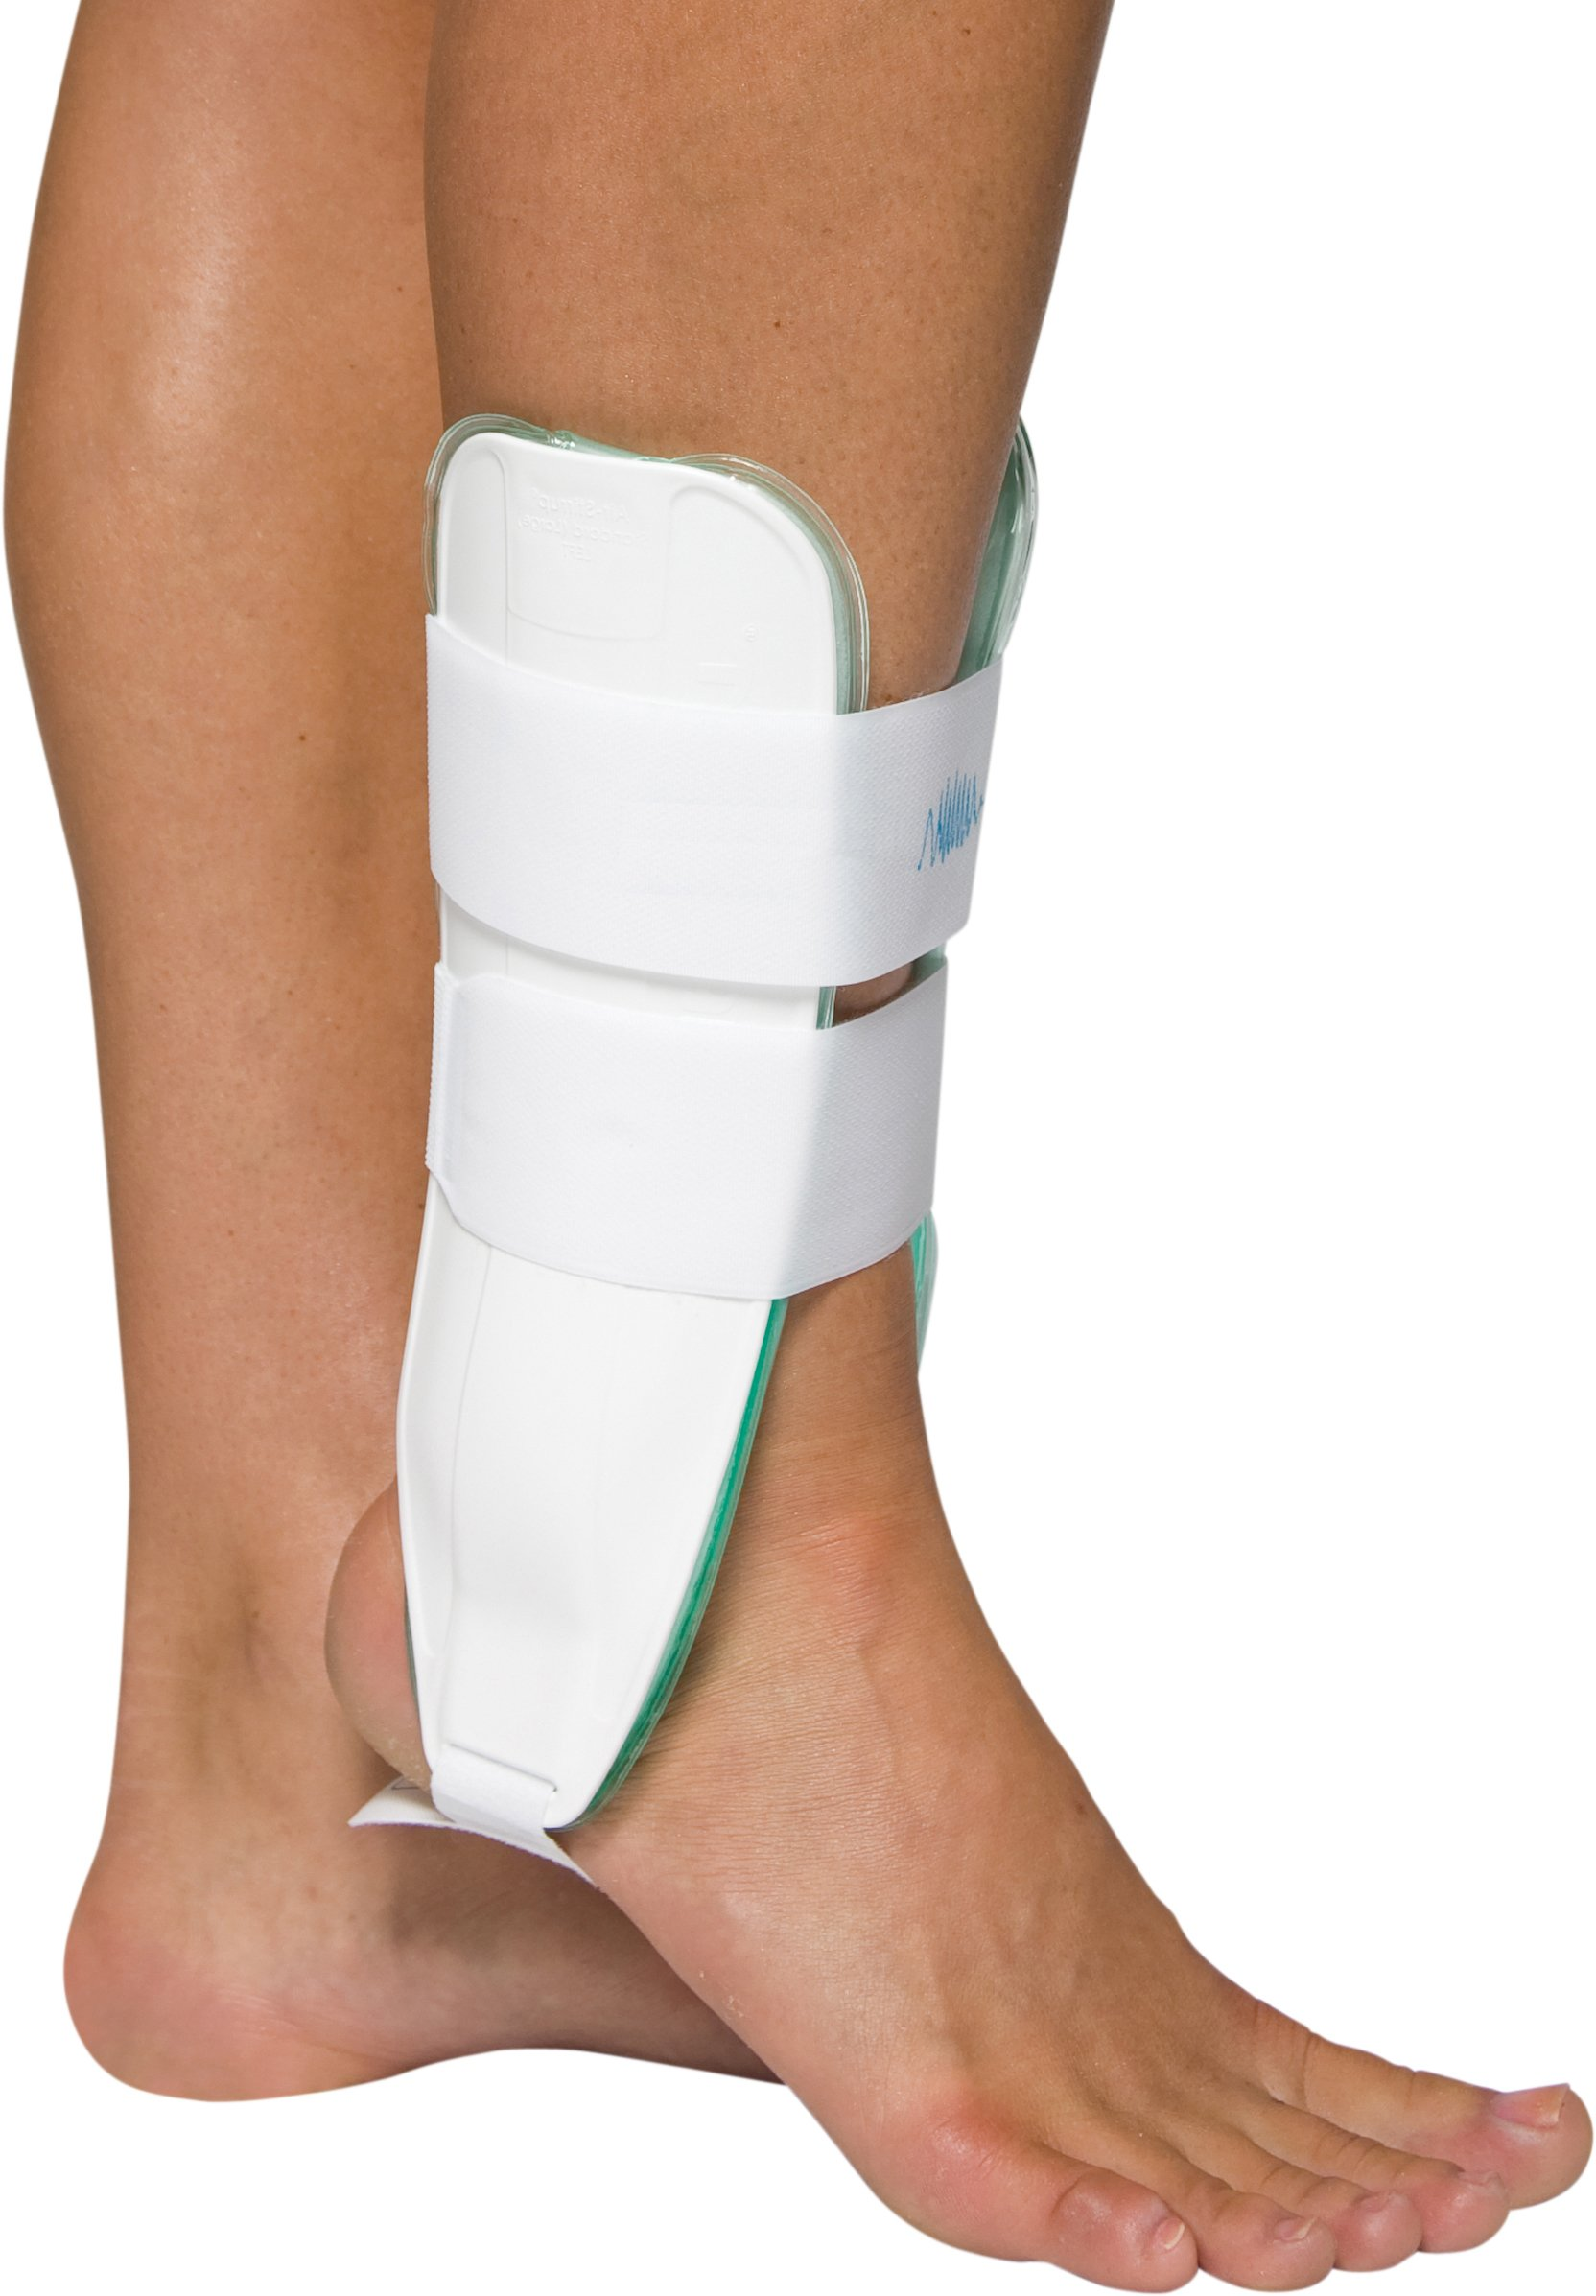 Aircast Air-Stirrup Ankle Support Brace, Right Foot, Medium by Aircast (Image #1)